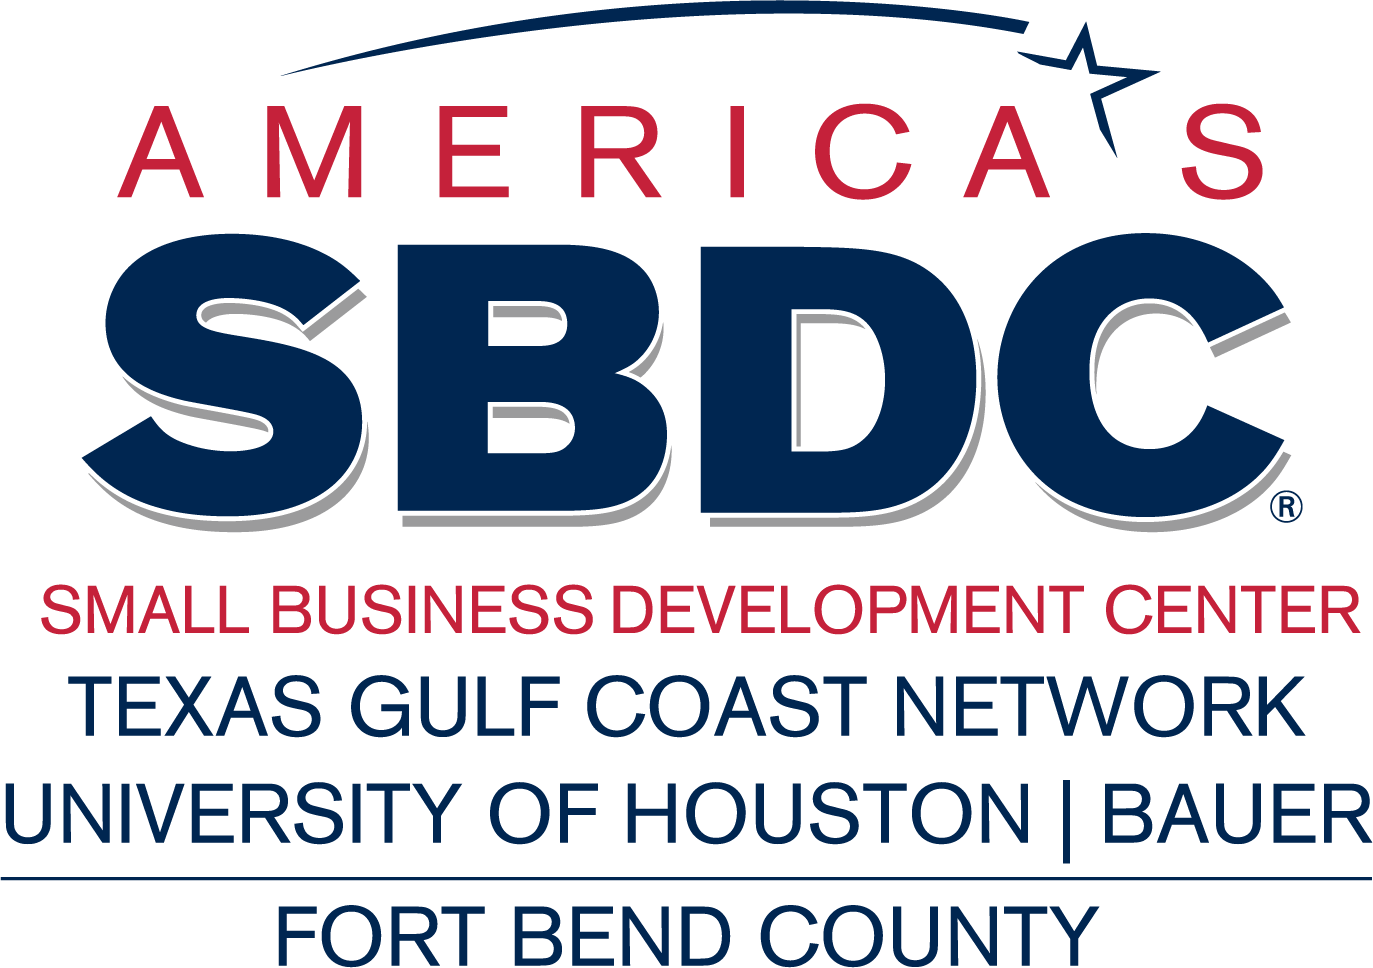 Fort Bend County Small Business Development Center Uh Sbdc Network